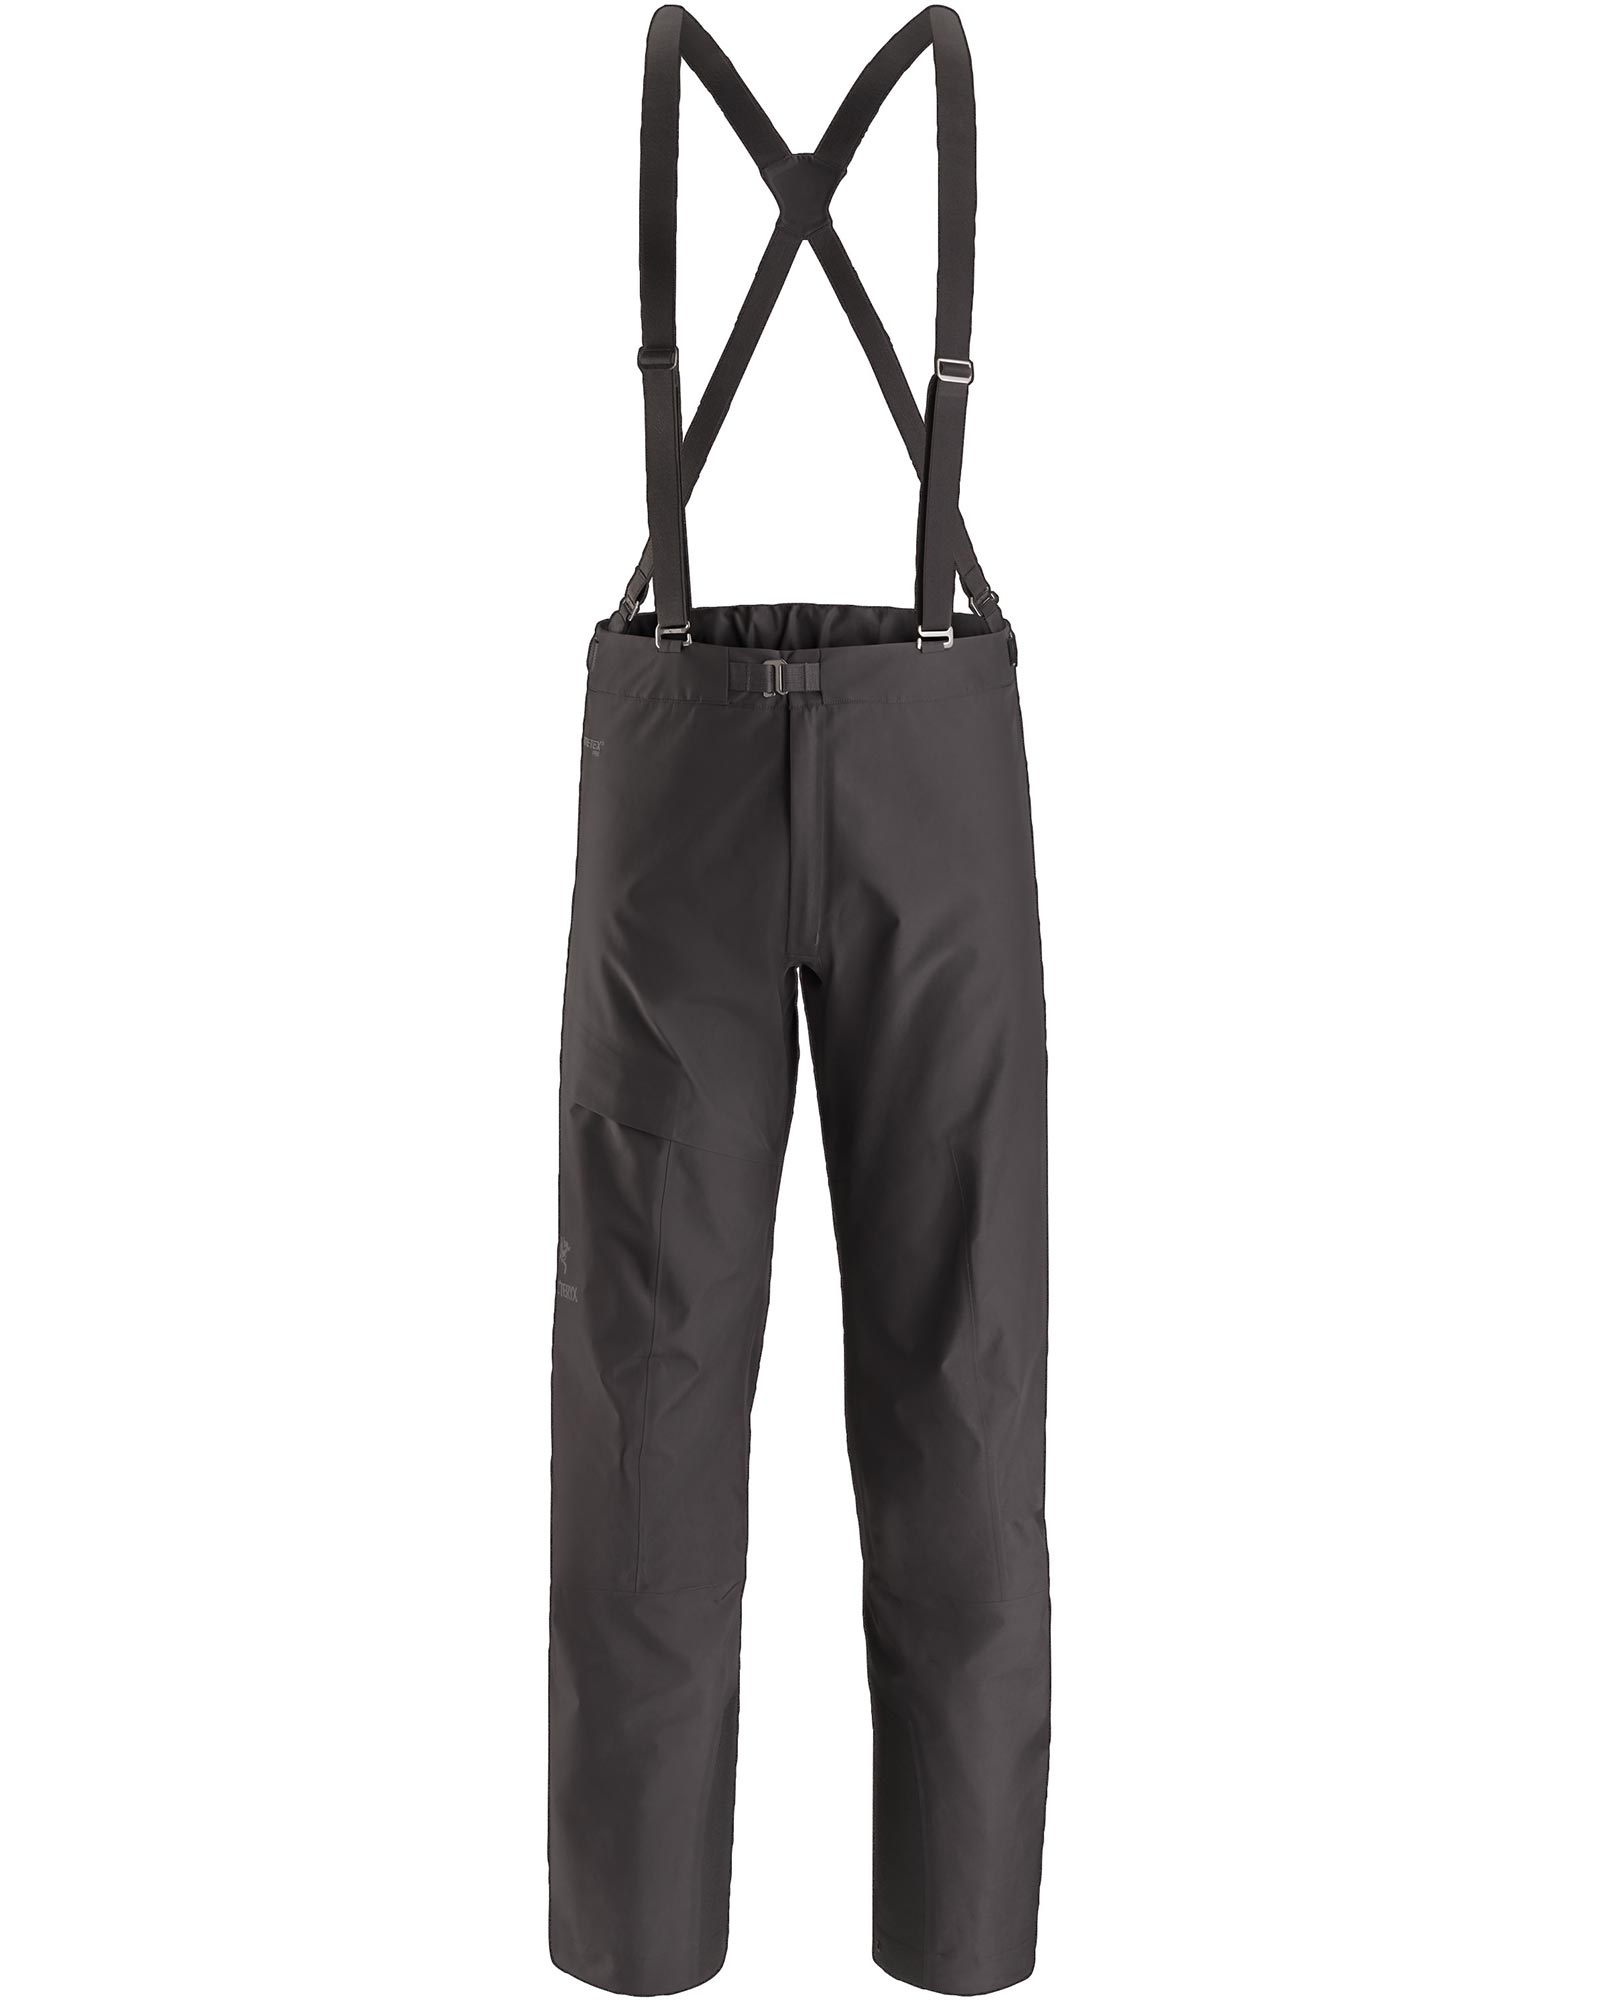 Arc'teryx Men's Alpha AR GORE-TEX Pro Pants Pilot 0